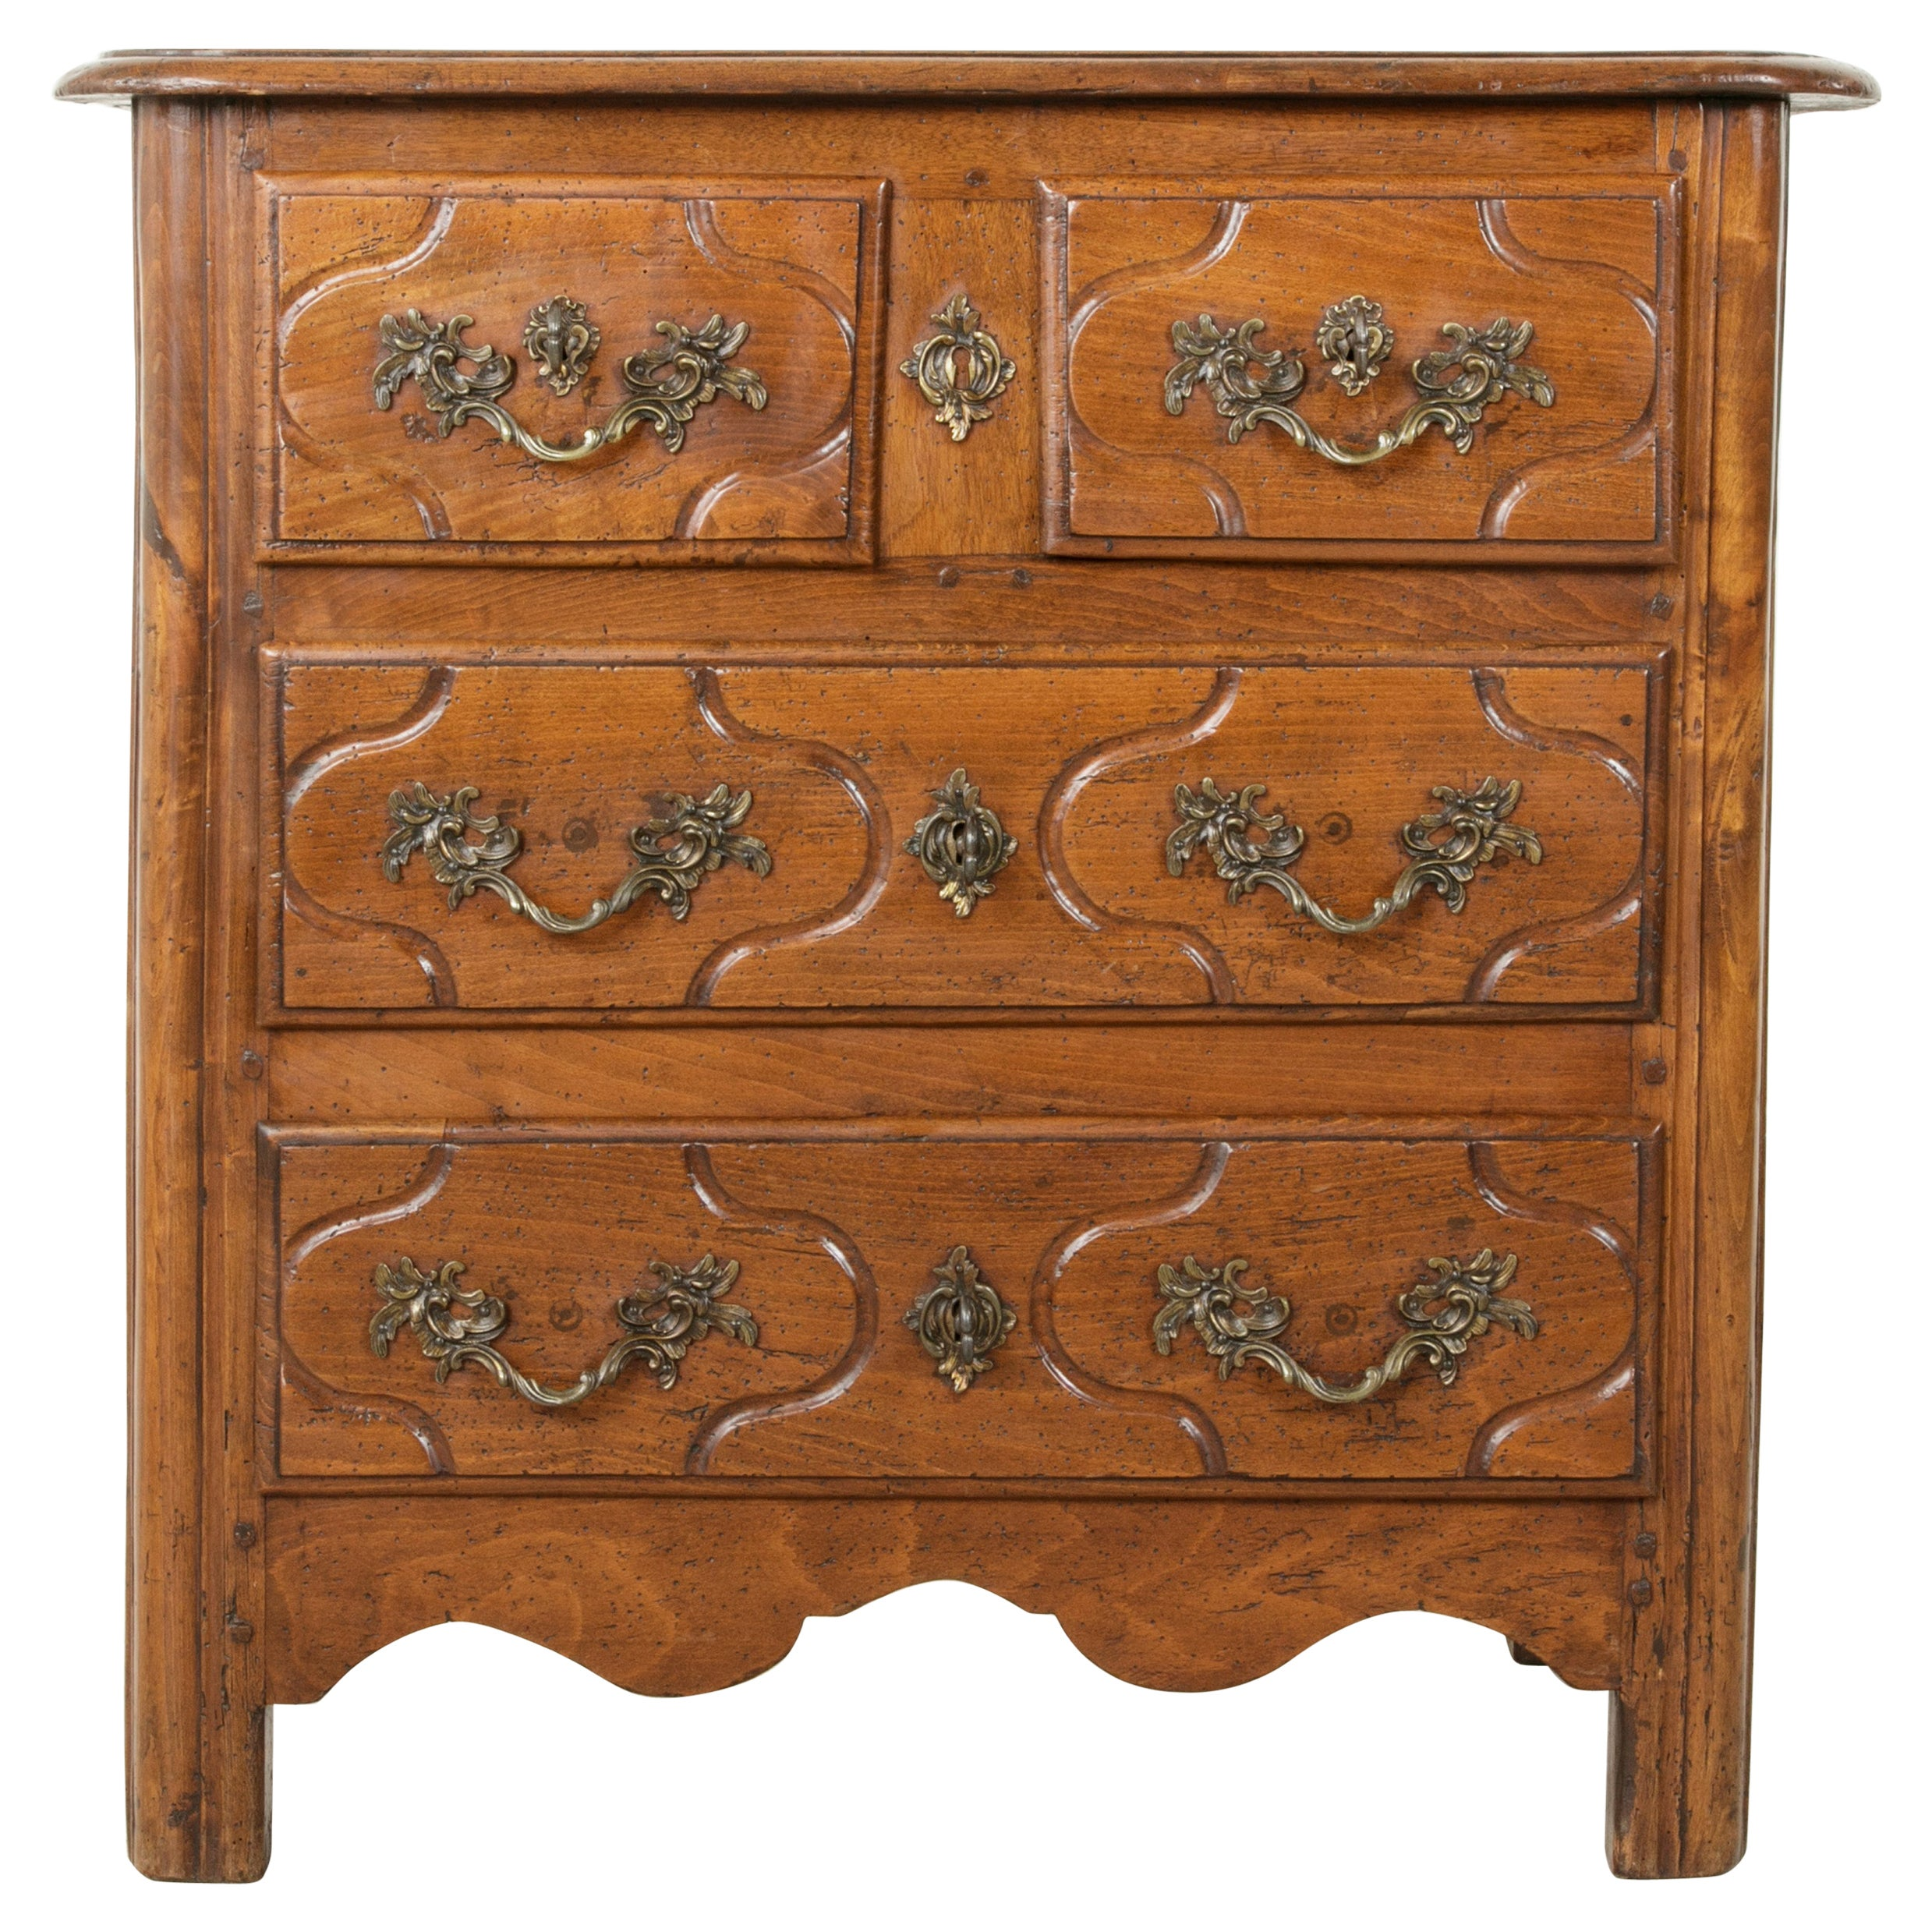 Mid-18th Century French Louis XIV Period Hand Carved Chestnut Commode or Chest